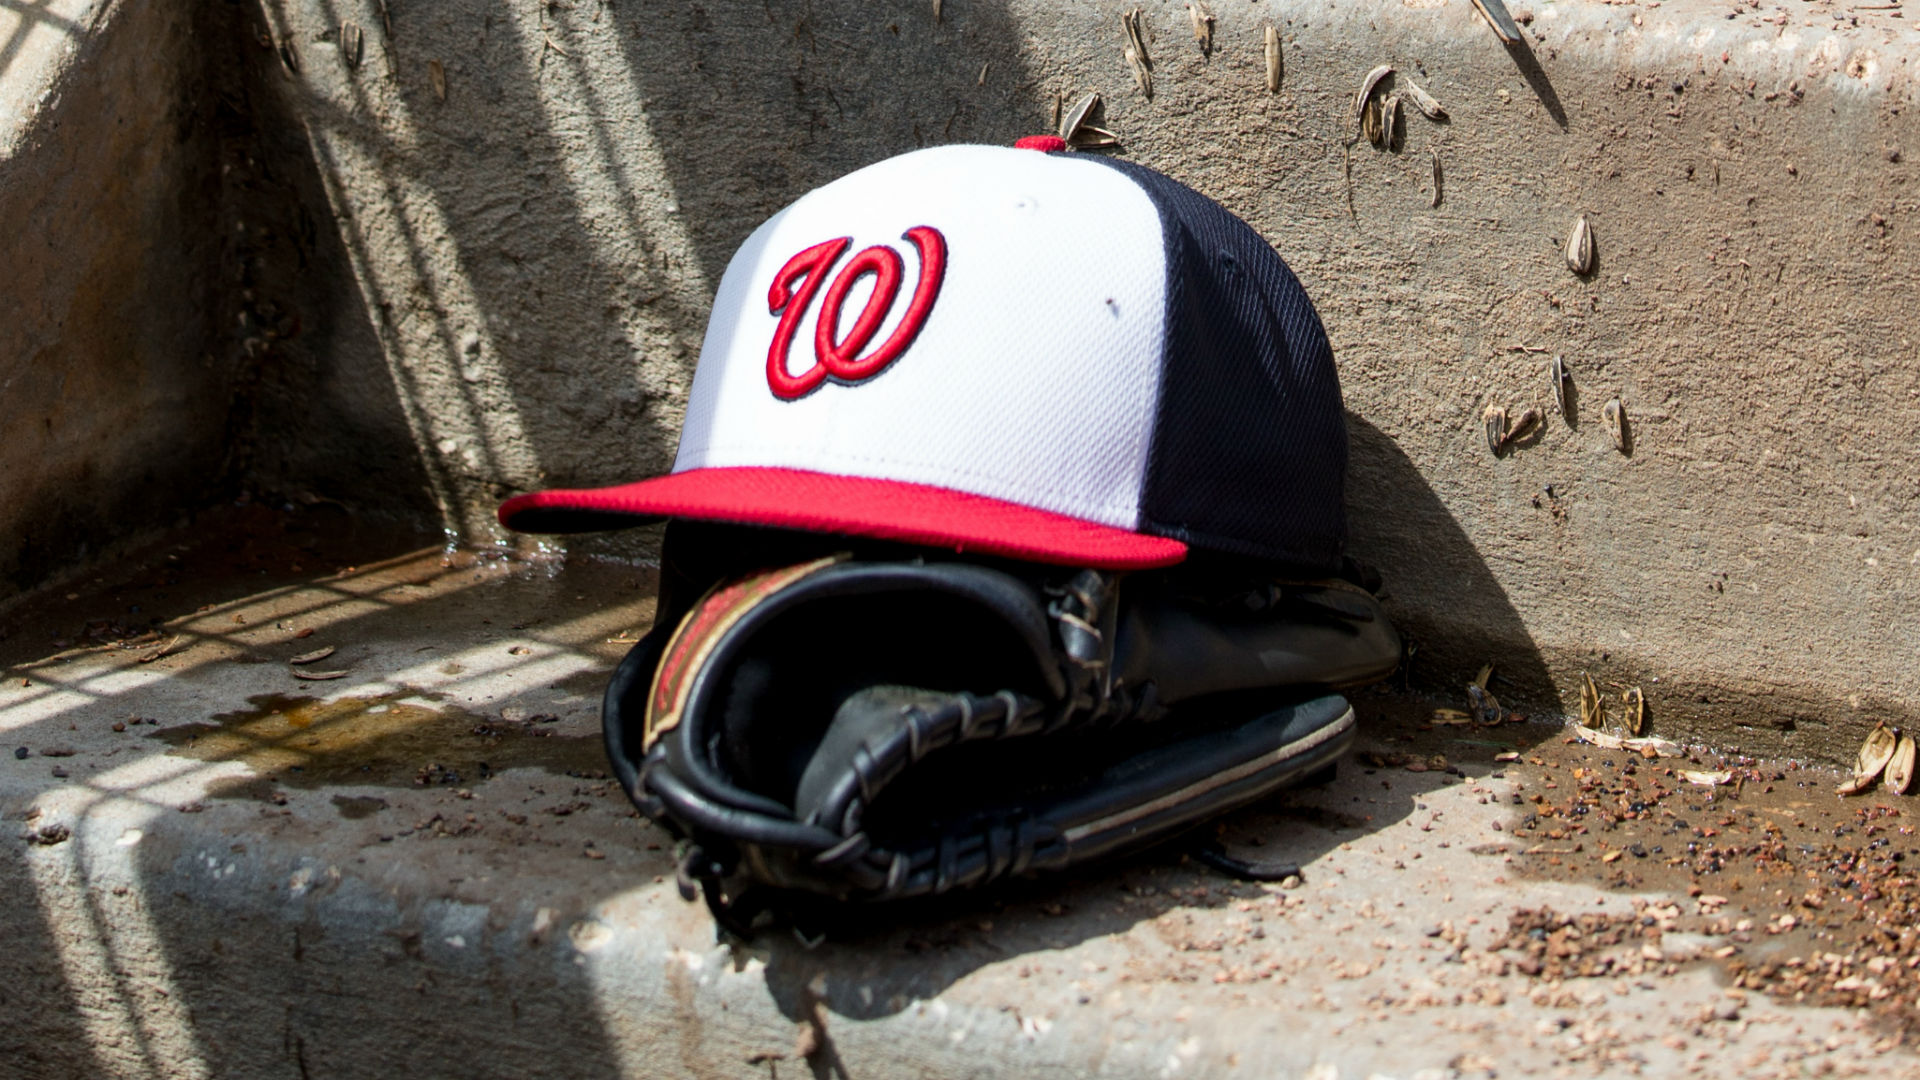 Washington Nationals cap